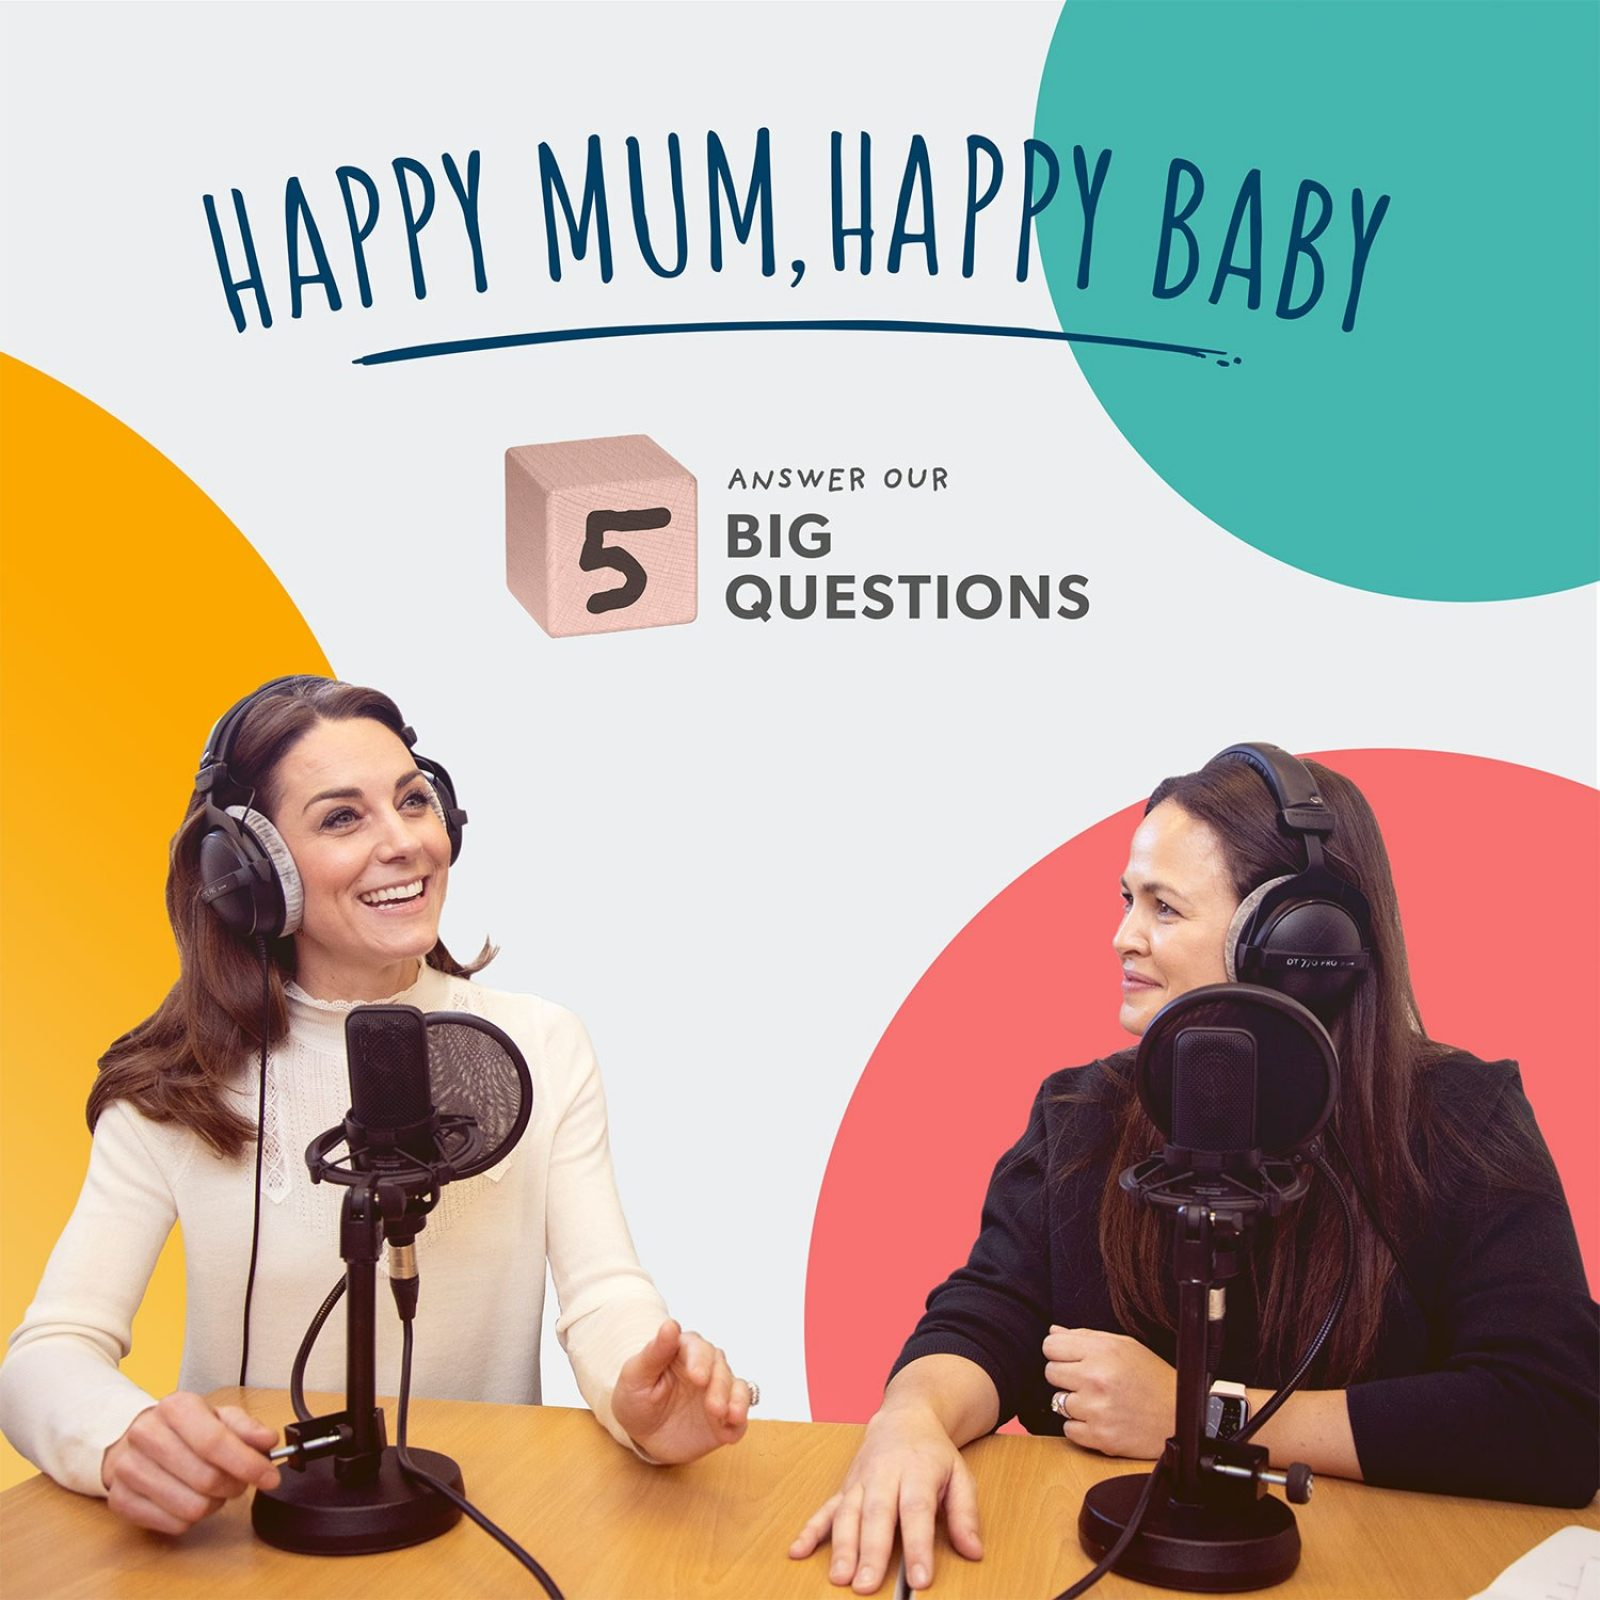 Happy Mum, Happy Baby: The Duchess of Cambridge transcript